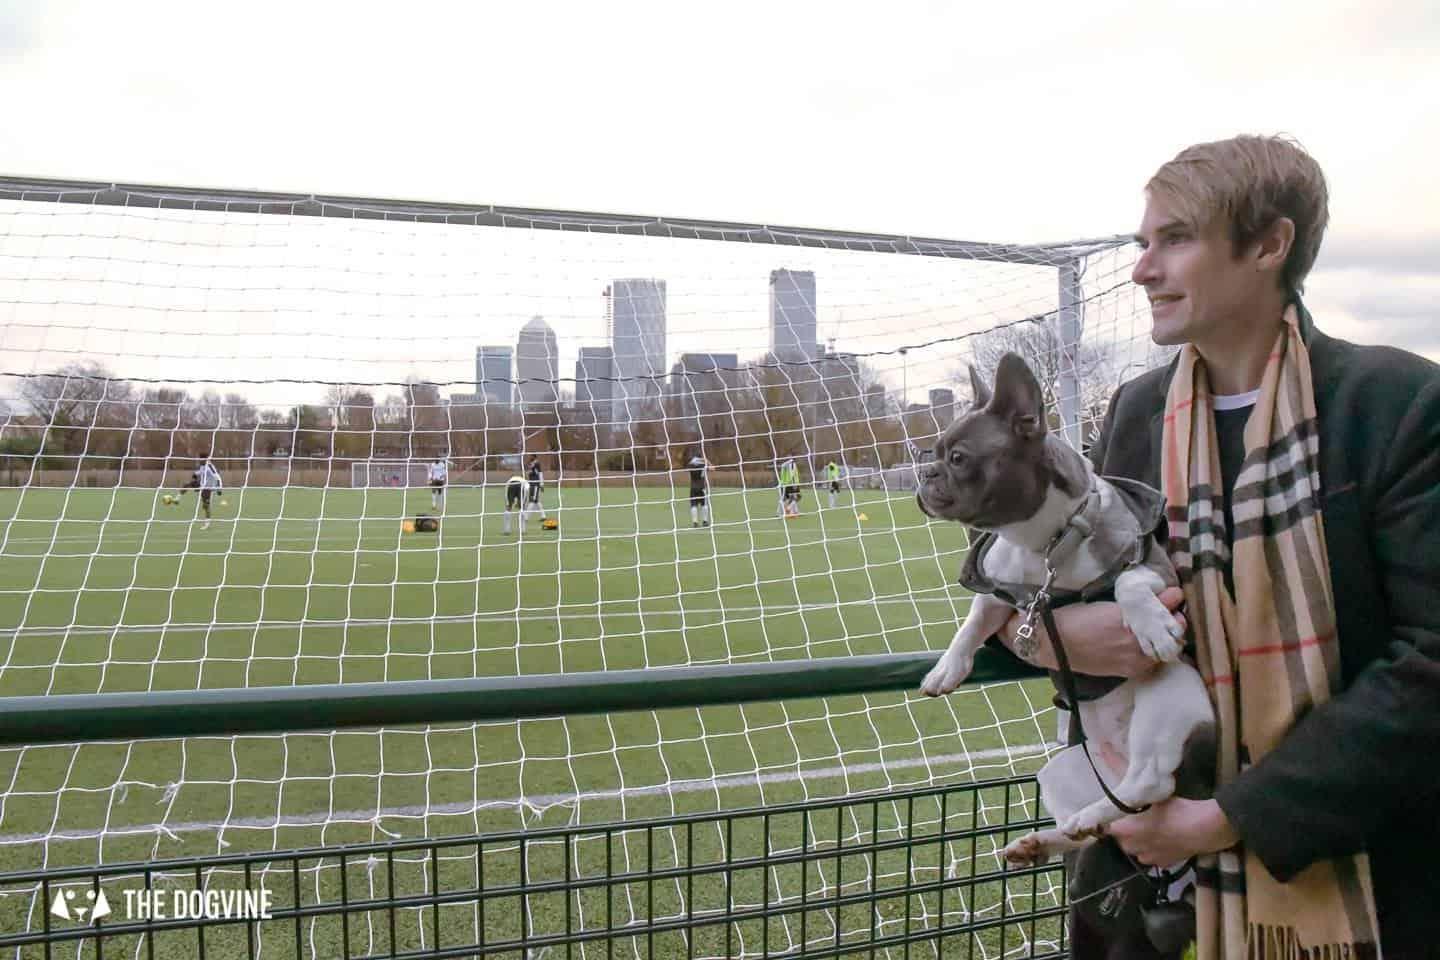 Dog-friendly Football Teams in London - On the sidelines at Fisher DC